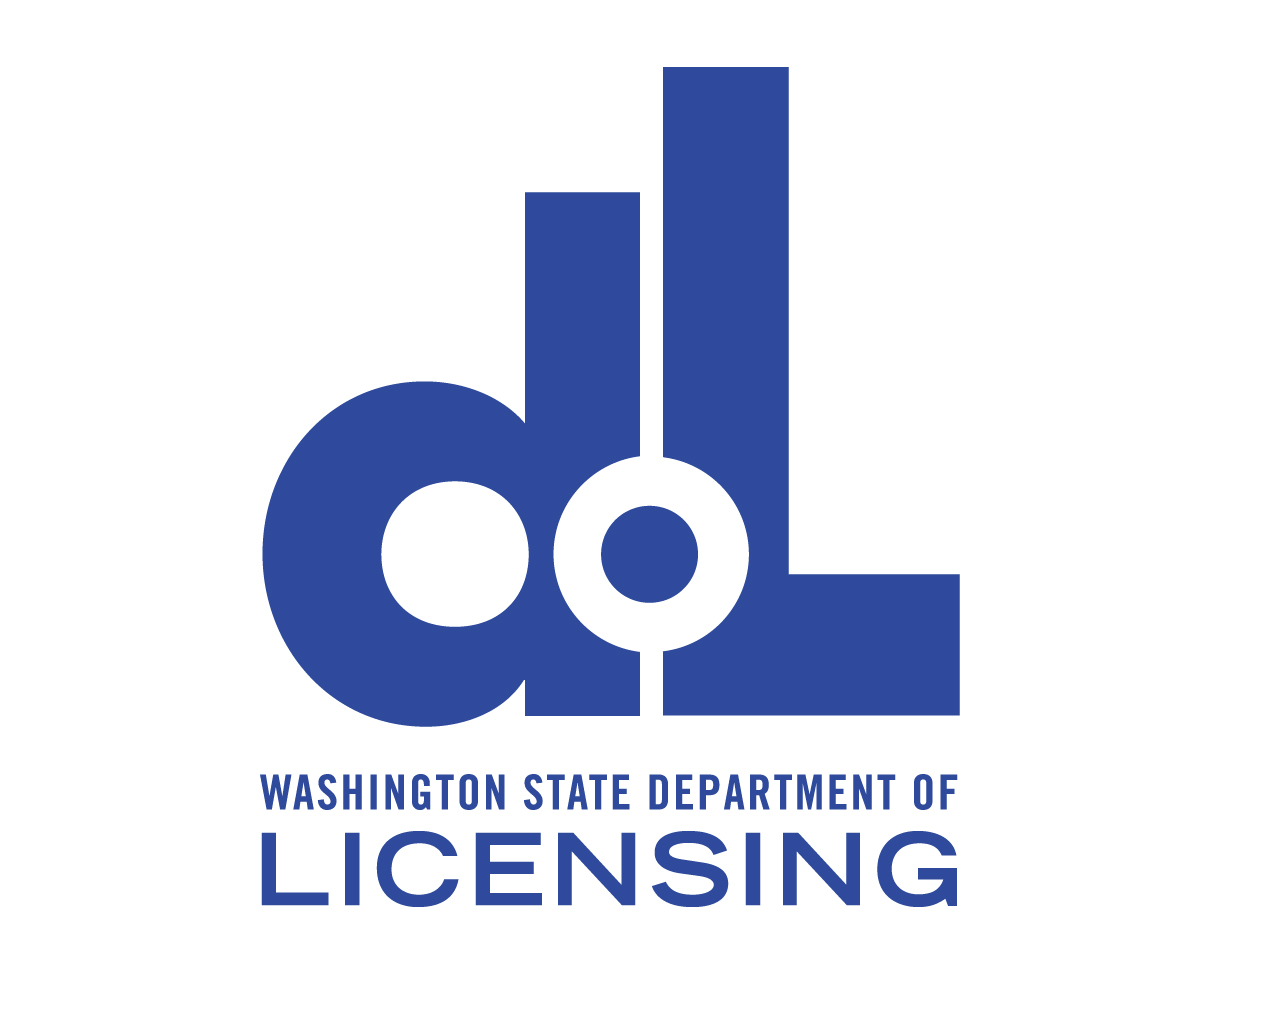 Dept of licensing logo WA state